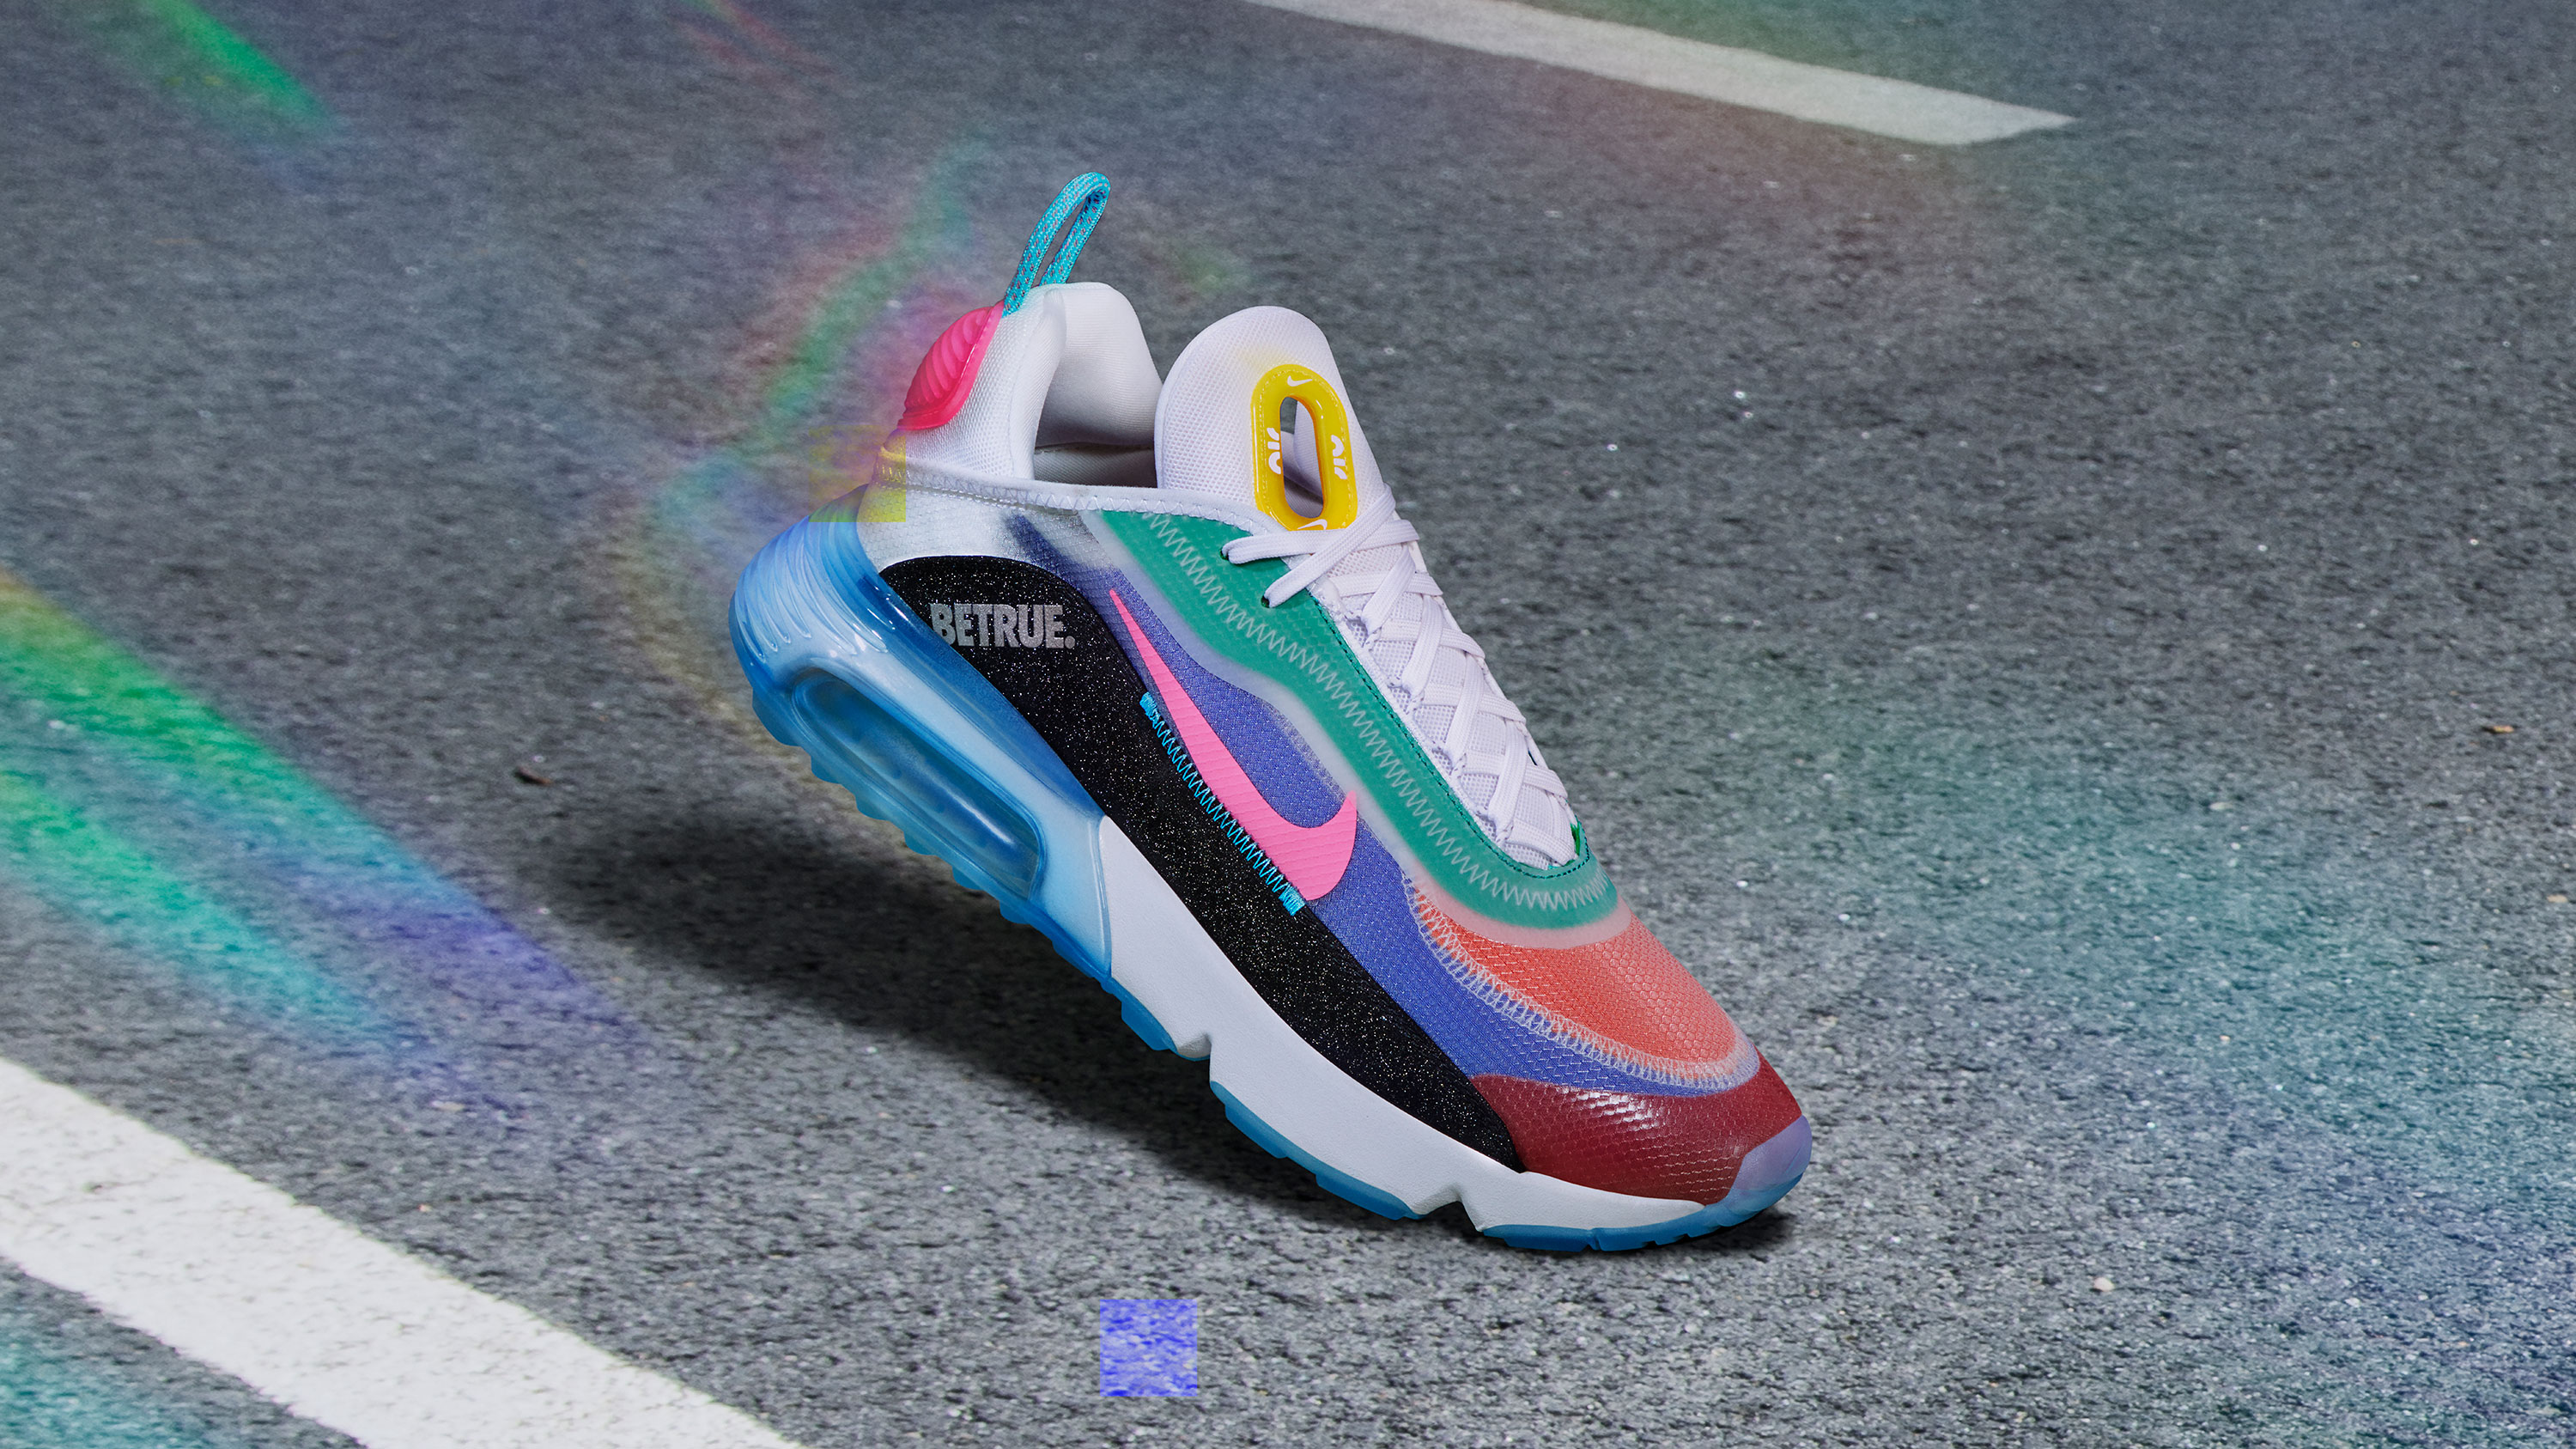 Nike:'Be true' range includes trainers and sandals